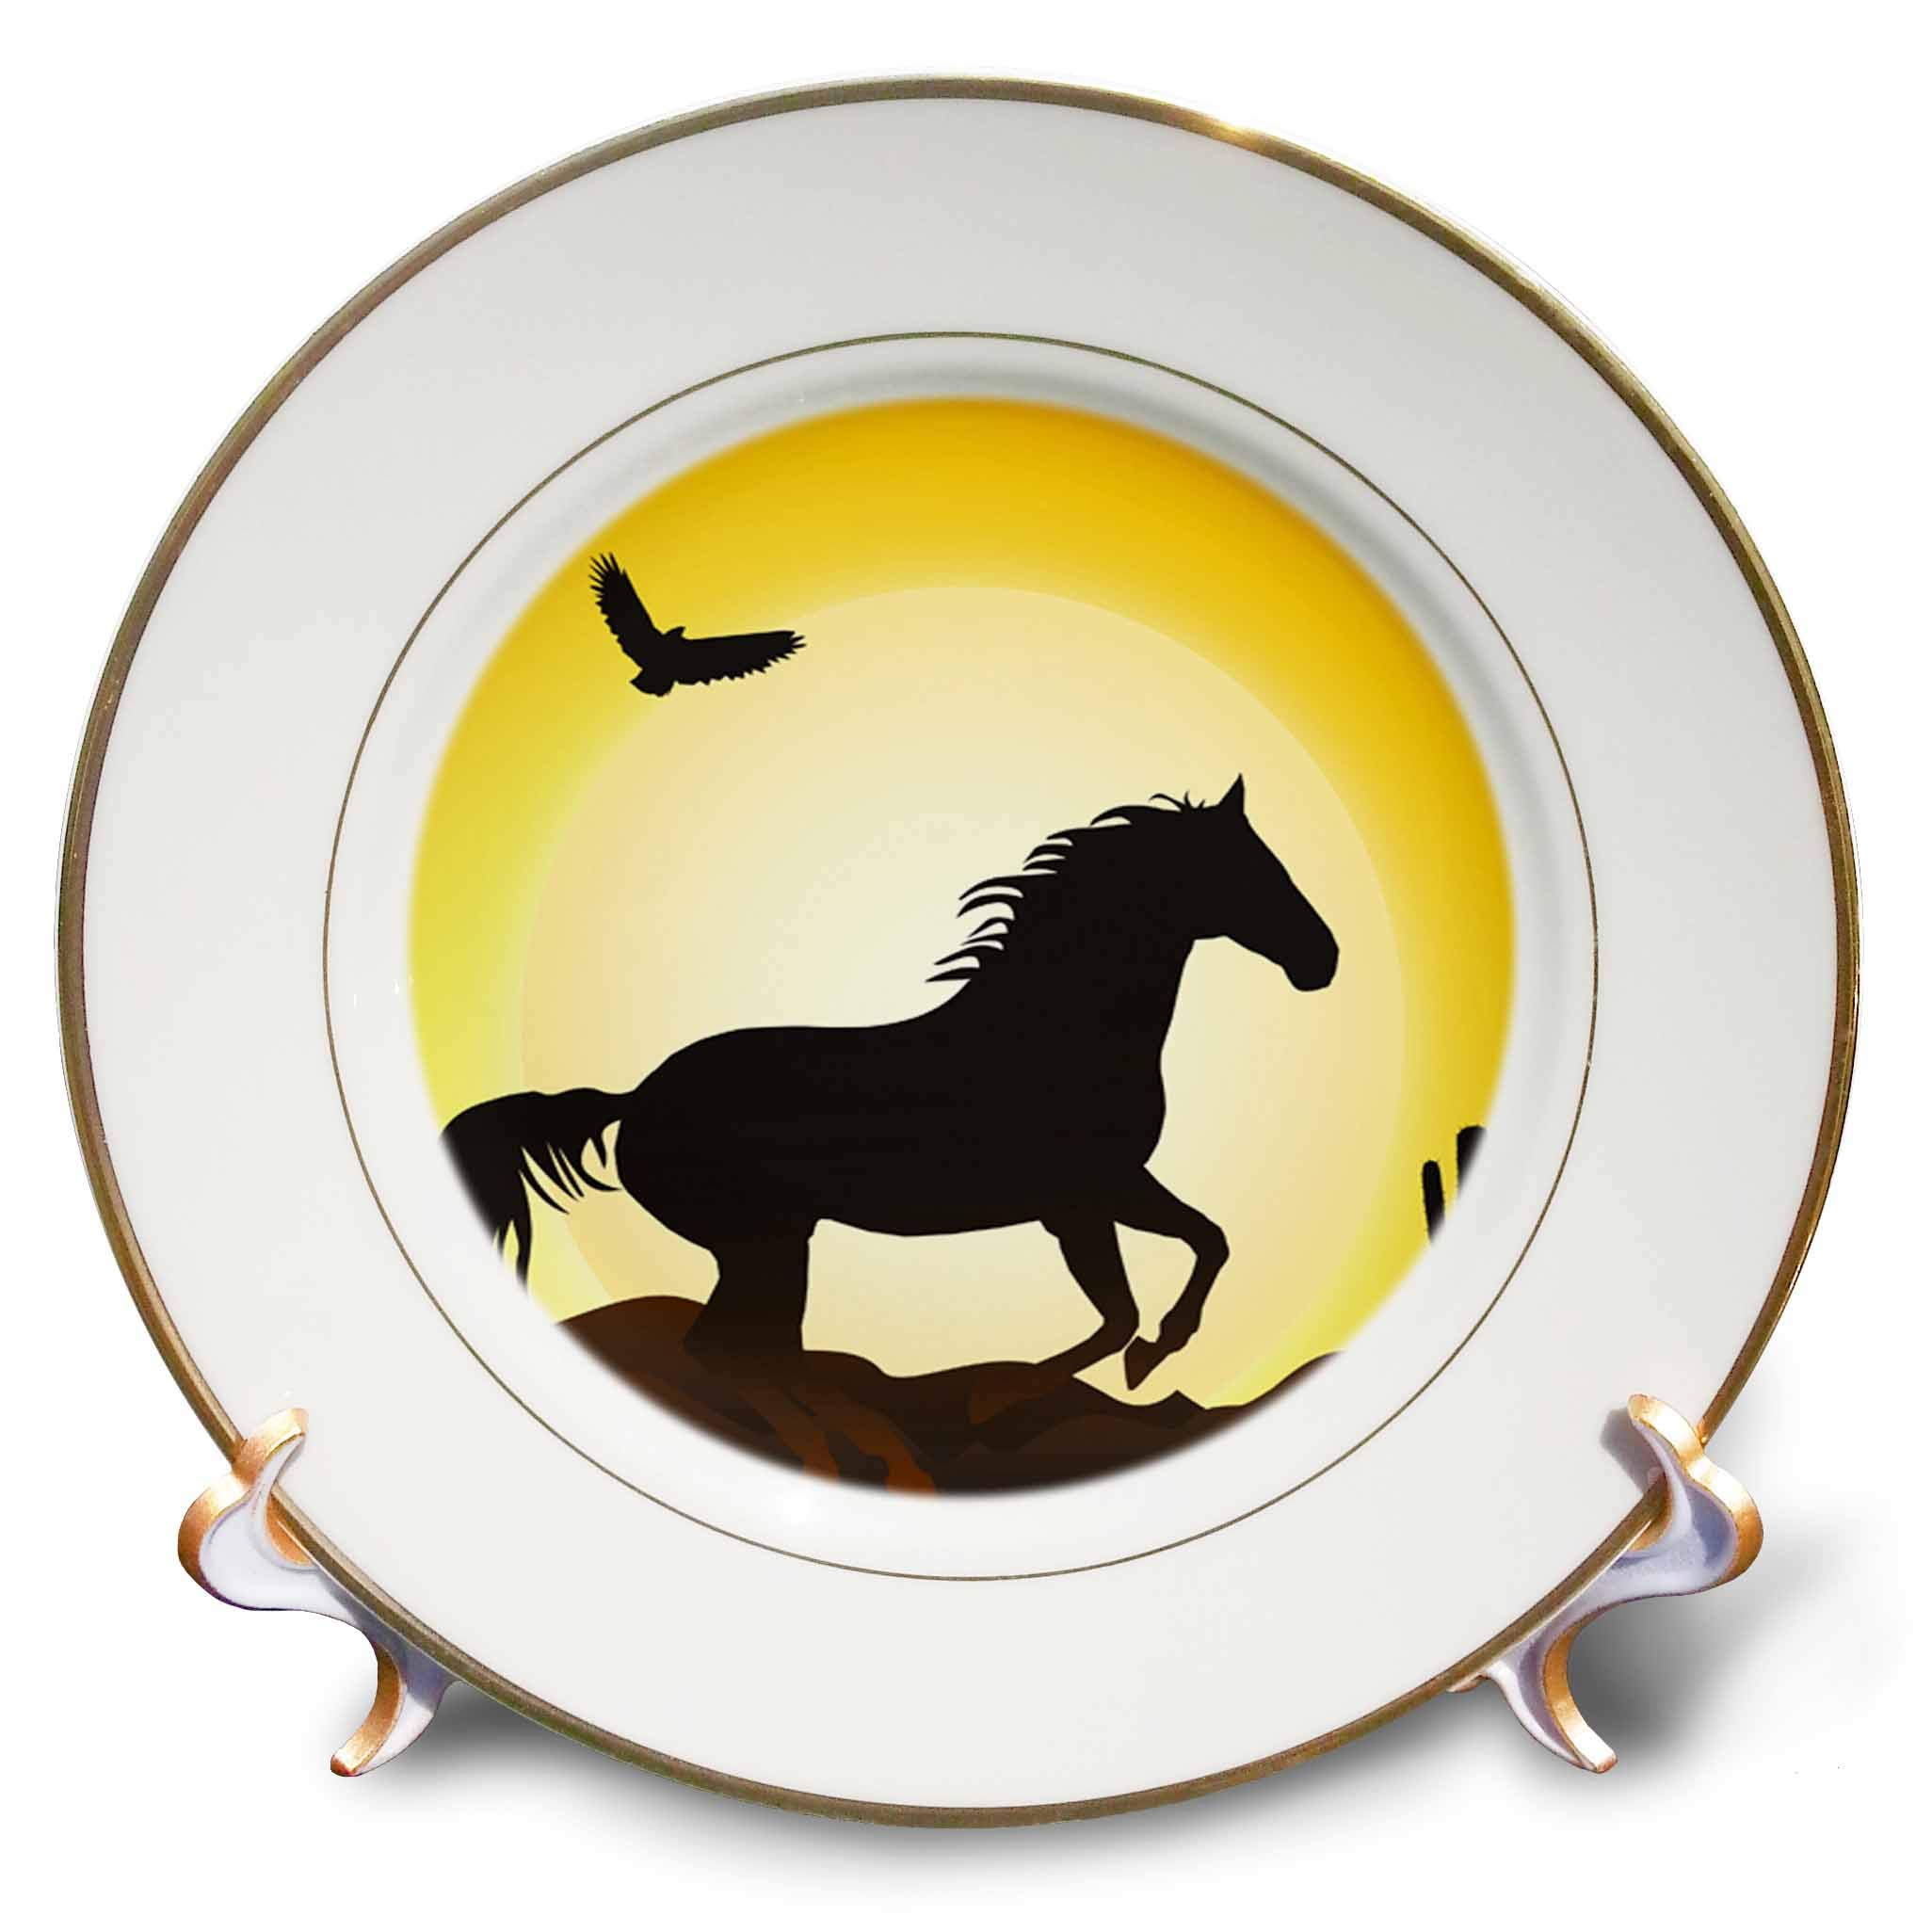 3dRose Sven Herkenrath Animal - Riding Horse with Bird and Sunset in The Background Freedom - 8 inch Porcelain Plate (cp_294925_1) by 3dRose